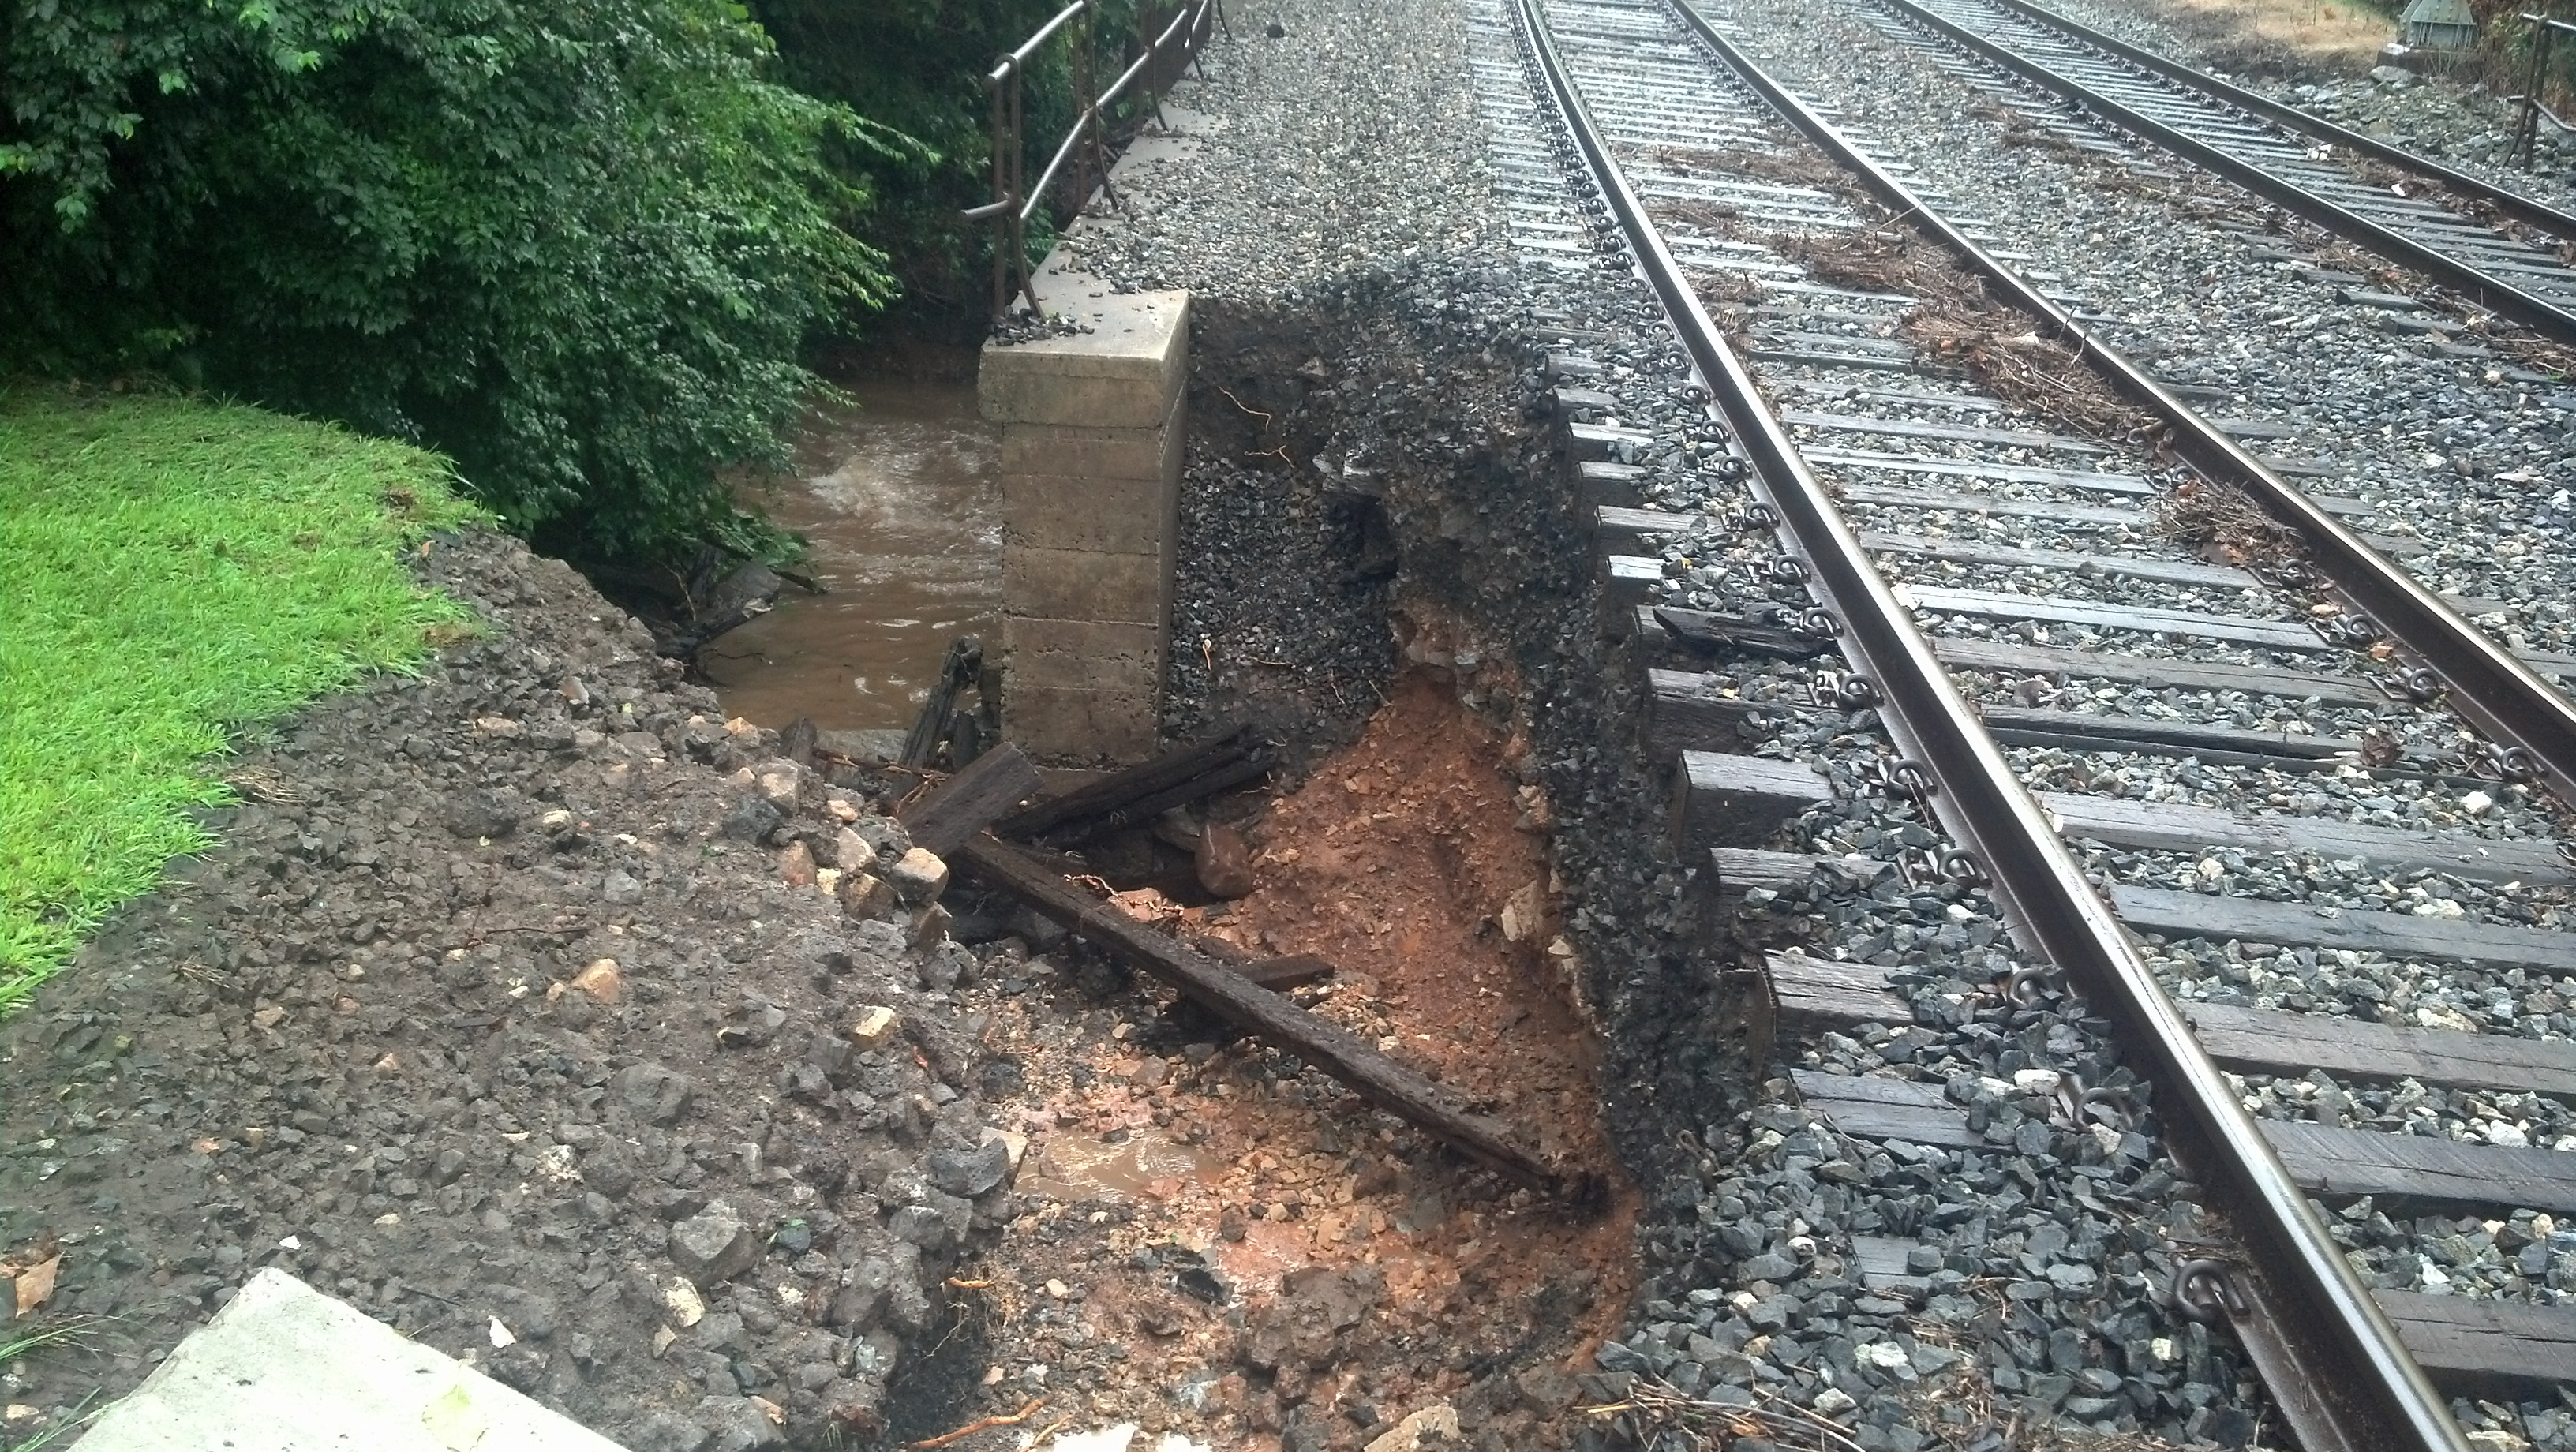 Track damage near Spring Mill Station on the Manayunk/Norristown Line, Photo Credit SEPTA